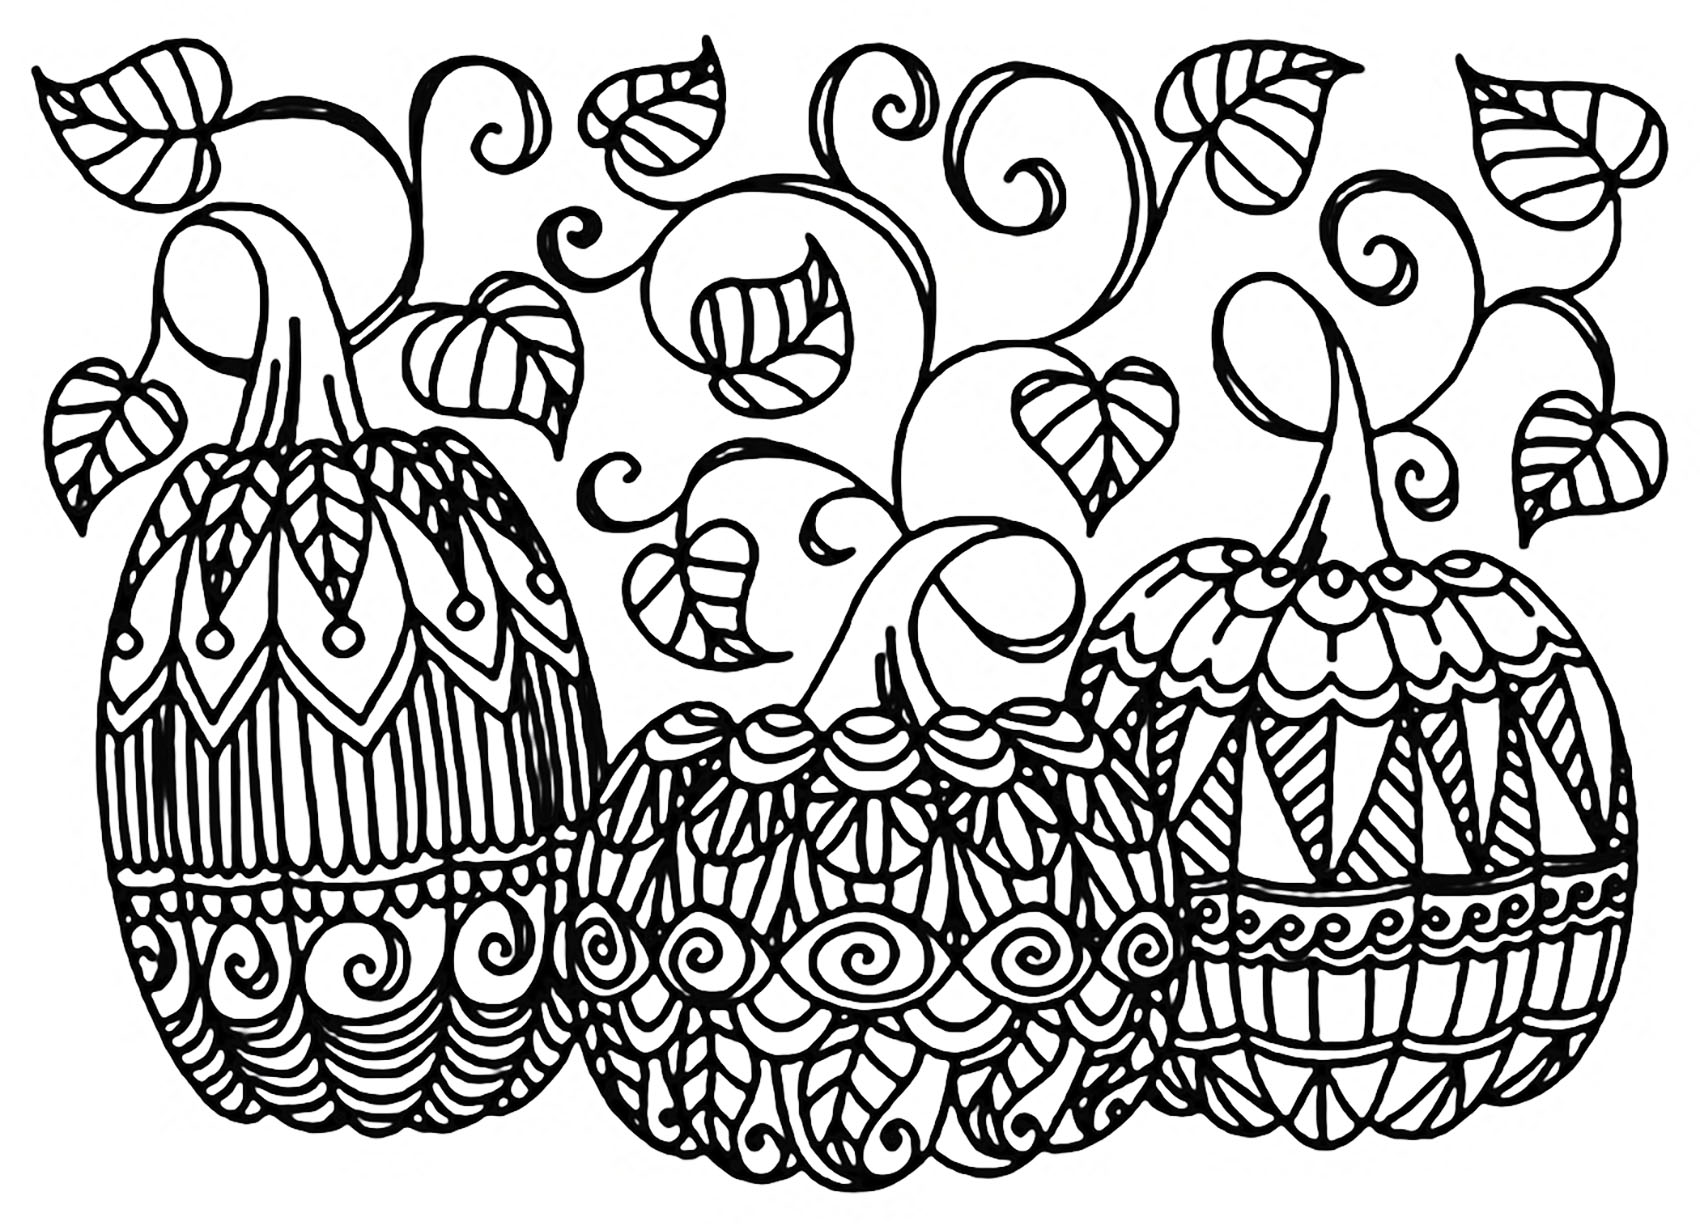 halloween adult coloring pages Halloween three pumpkins   Halloween Adult Coloring Pages halloween adult coloring pages